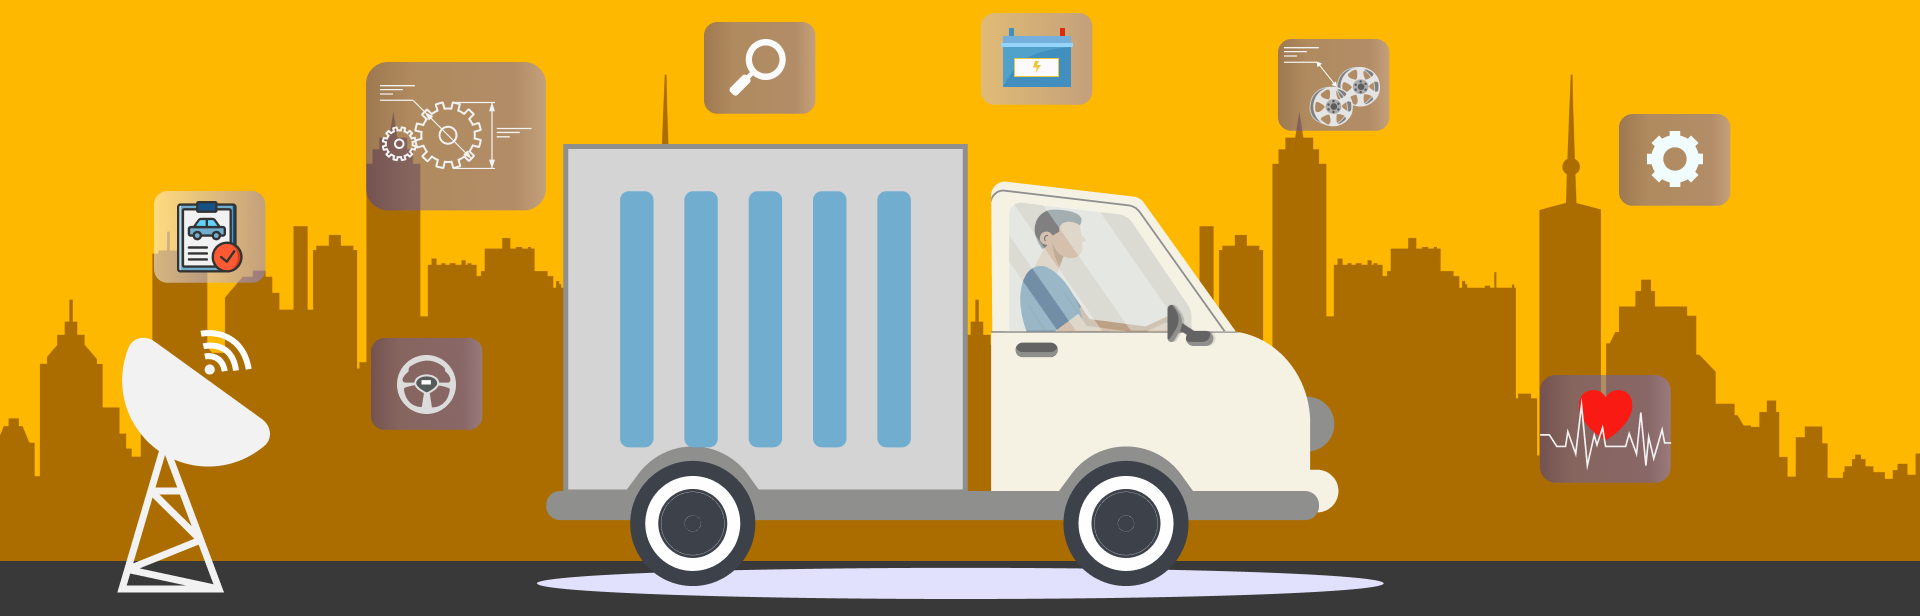 Real-Time Transport Diagnostics via IoT